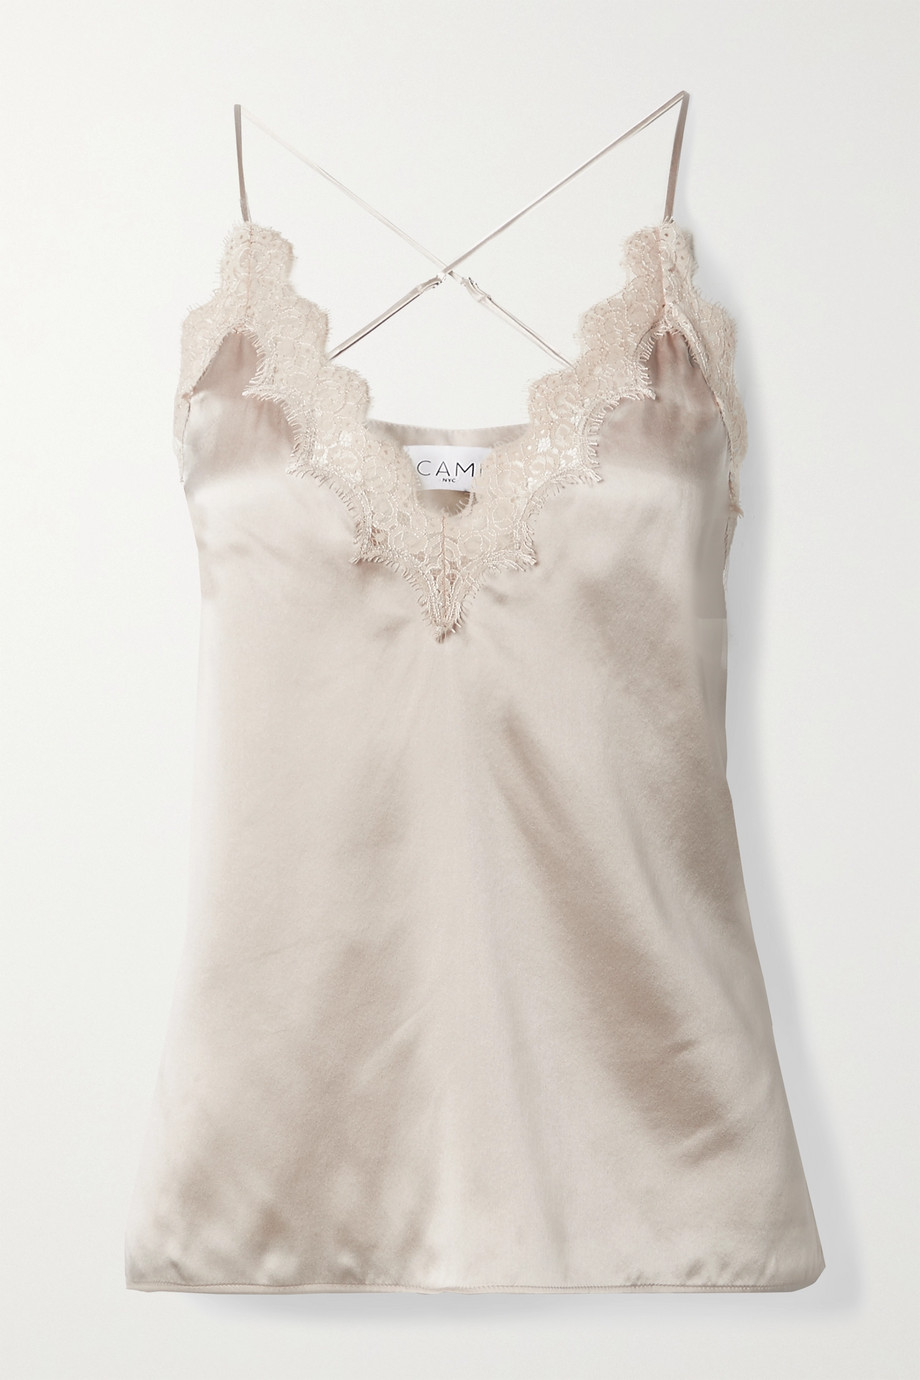 Cami NYC The Everly Top aus Seiden-Charmeuse mit Spitzenbesatz